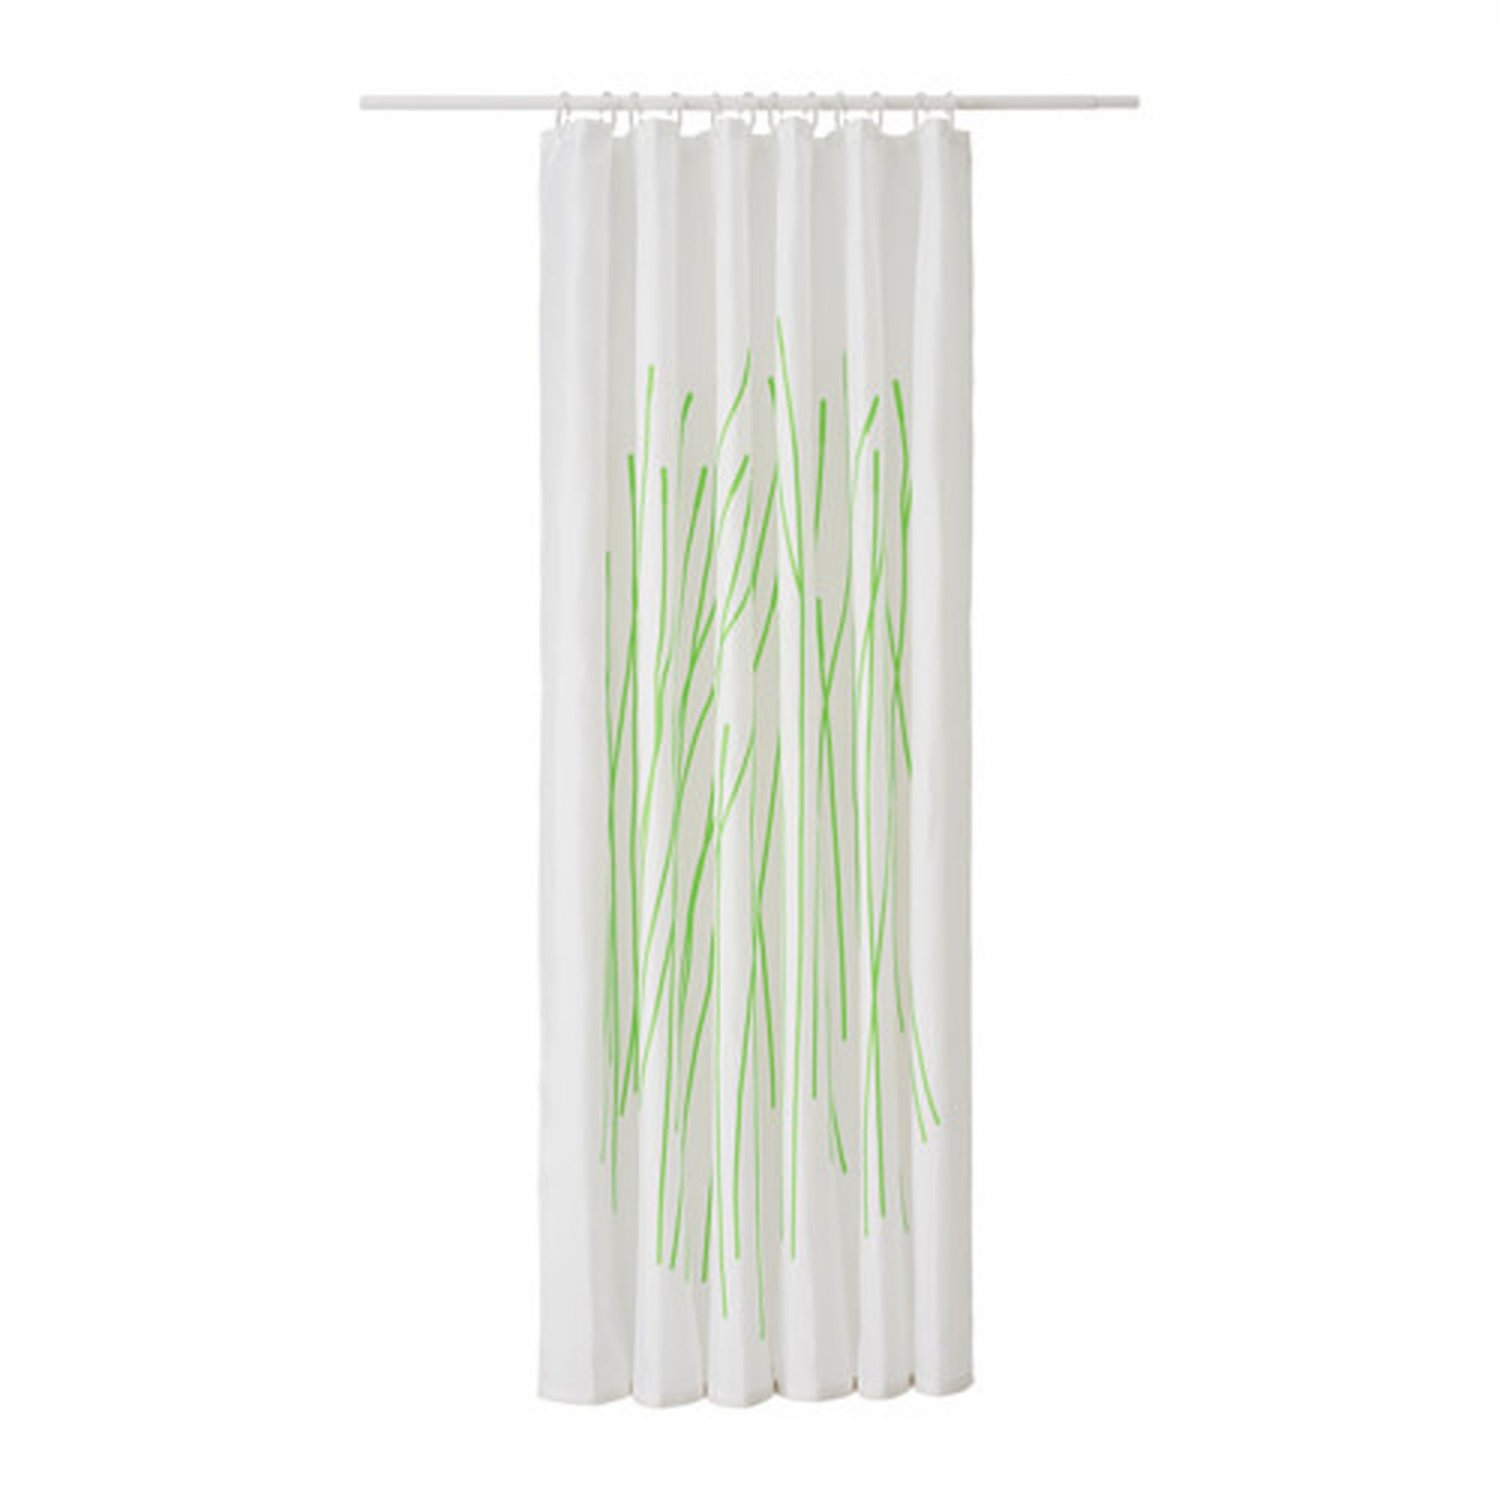 100 bamboo shower curtain gardinen deko bambu